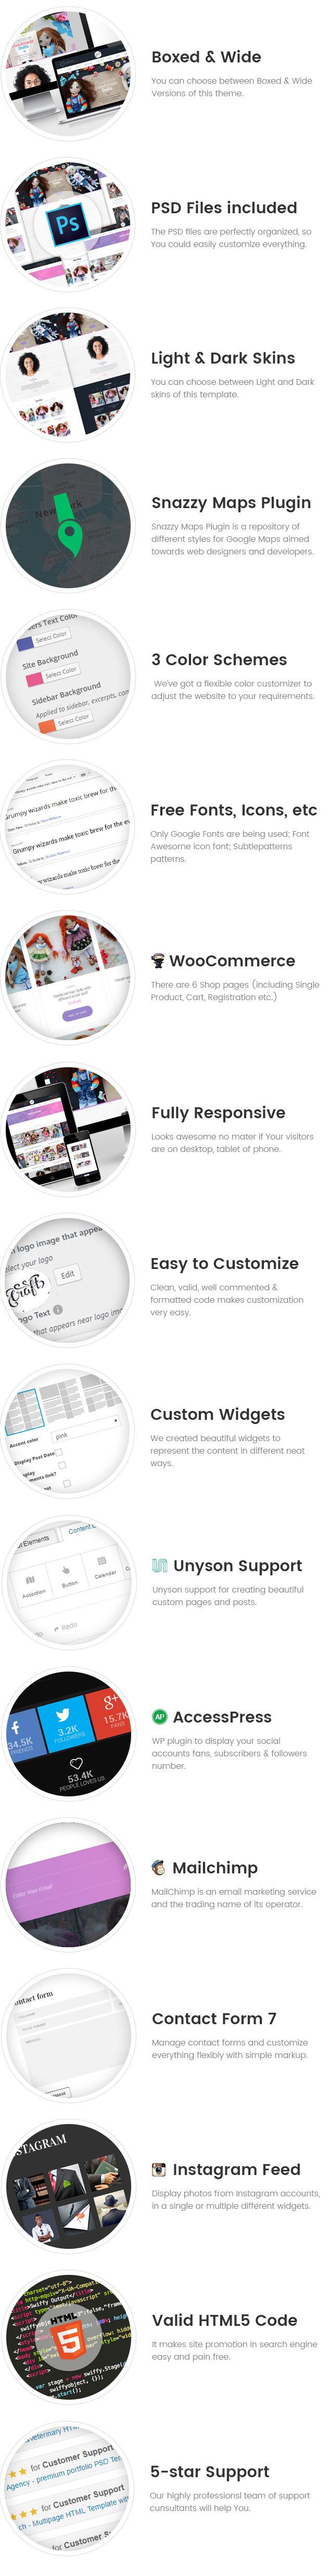 CraftPro - Hobby and Crafts WordPress Theme